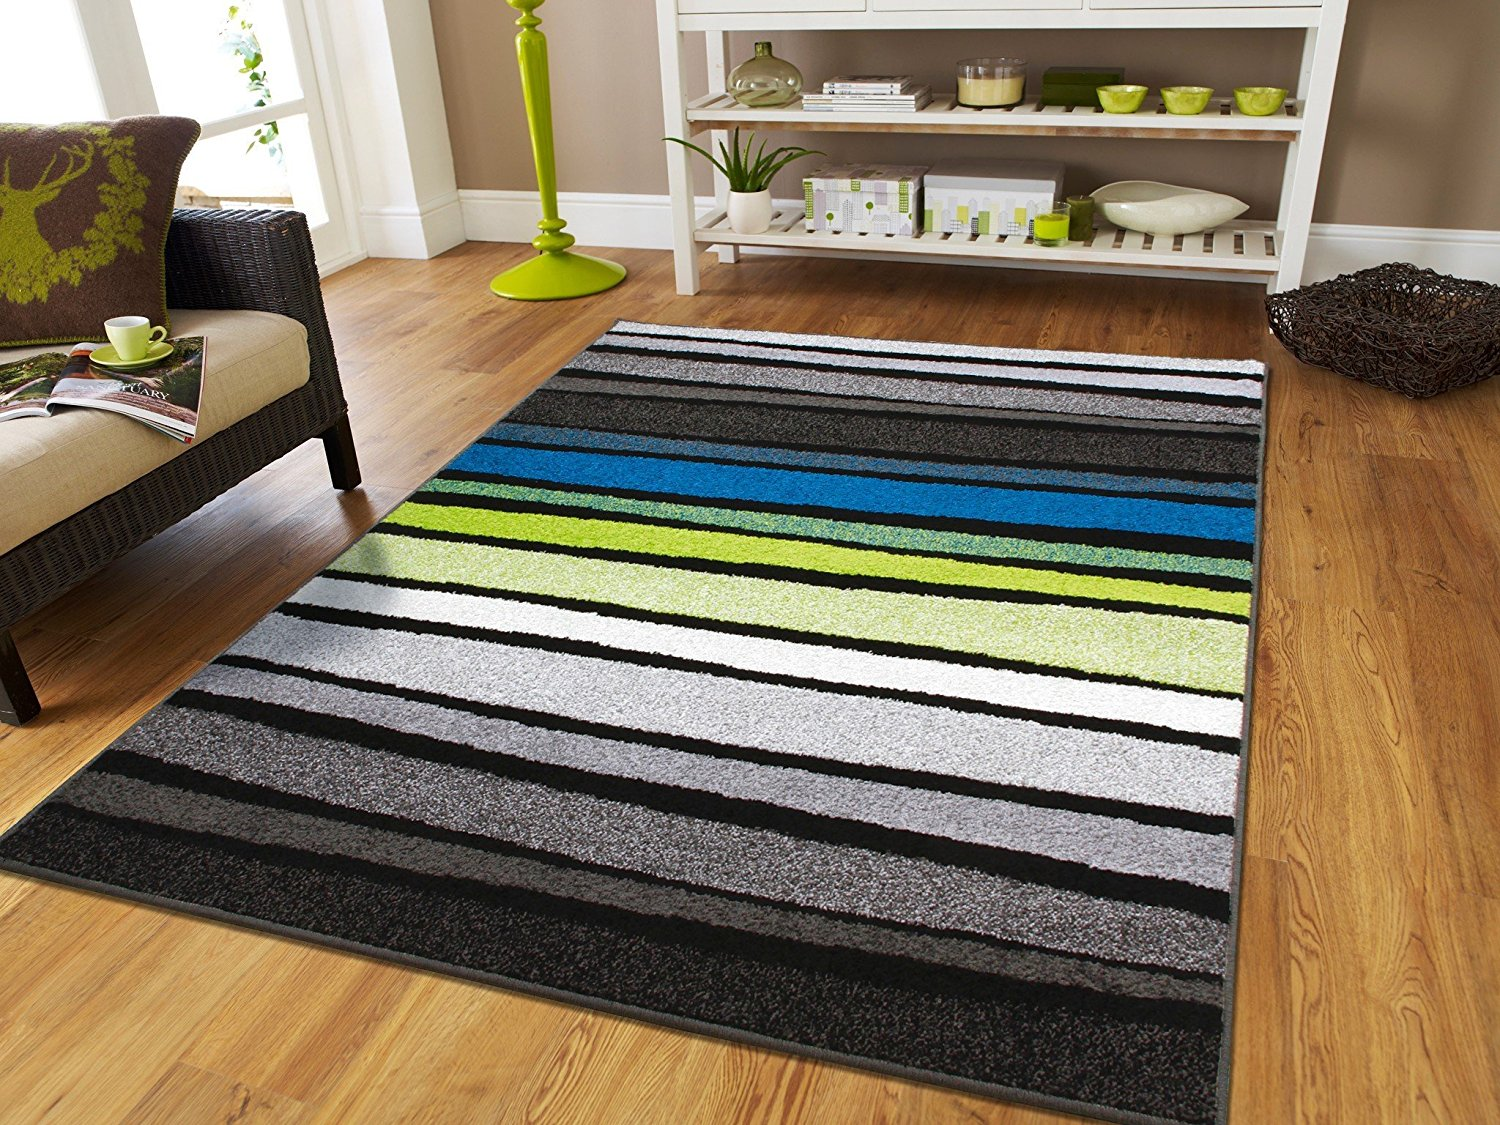 Elegant Contemporary Rugs 8x10 Area Rug On Clearance 8x11 Rugs For Living Room Blue  Black Turquoise White